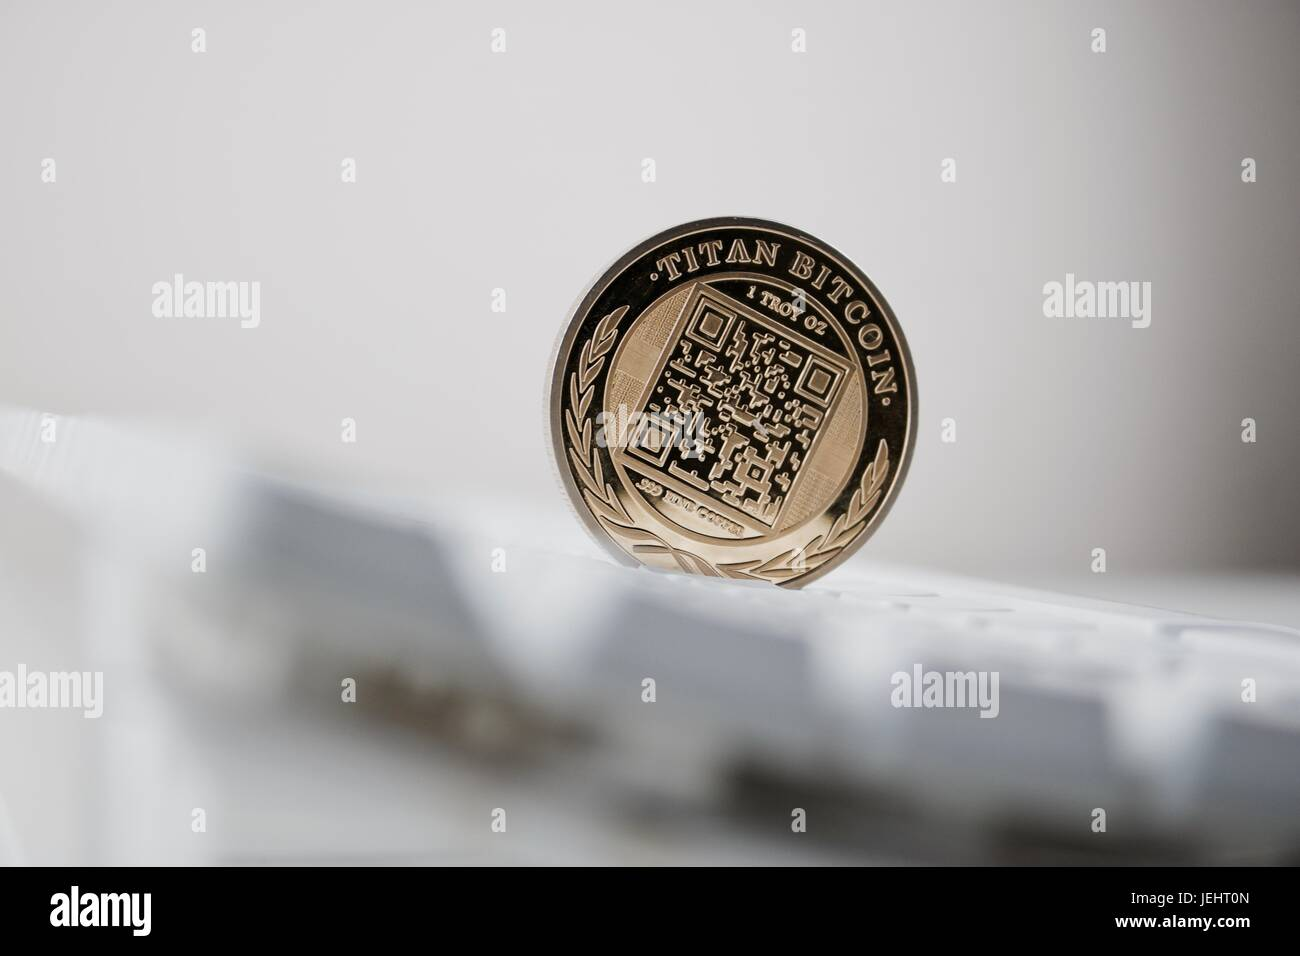 Digital currency physical gold titan bitcoin with QR Code